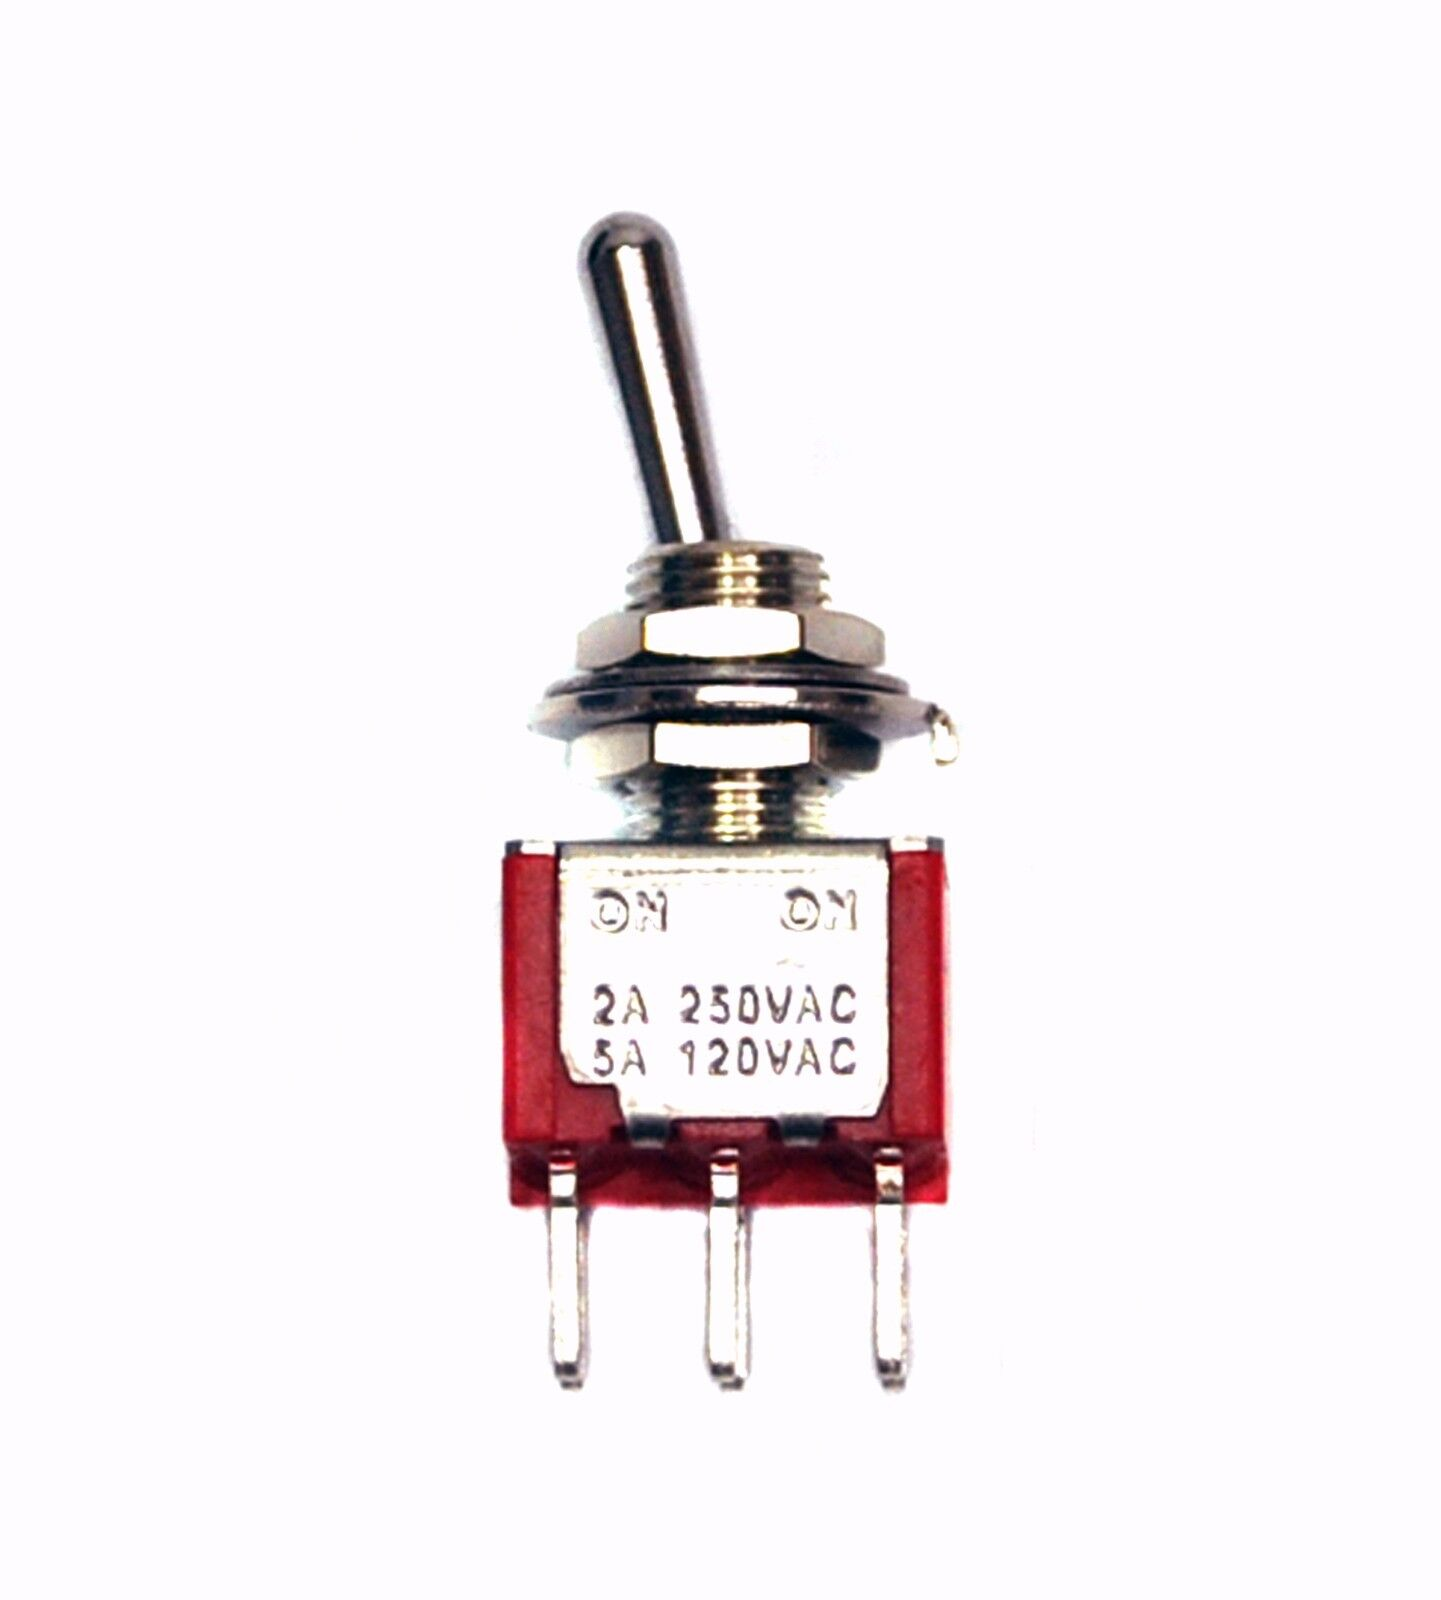 10pc Sub-Miniature Toggle Switch 2MS1T1B1M2QES On//On 3P SPDT 1A250V 3A120V PCB